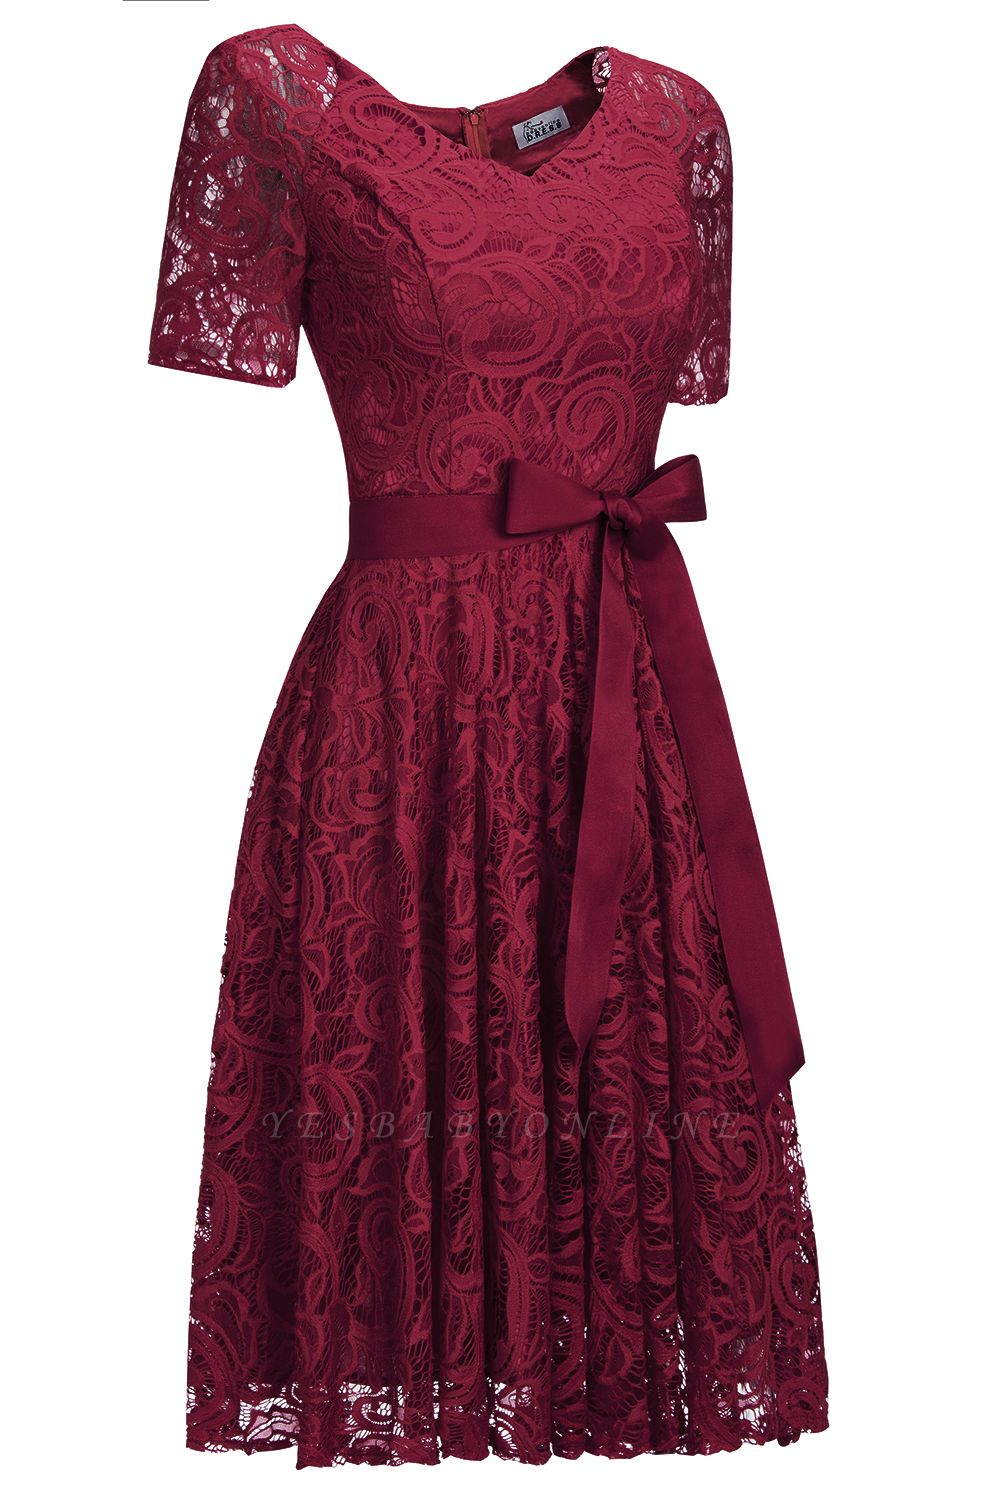 Stunning V-neck Short Sleeves Lace Dresses with Bow Sash